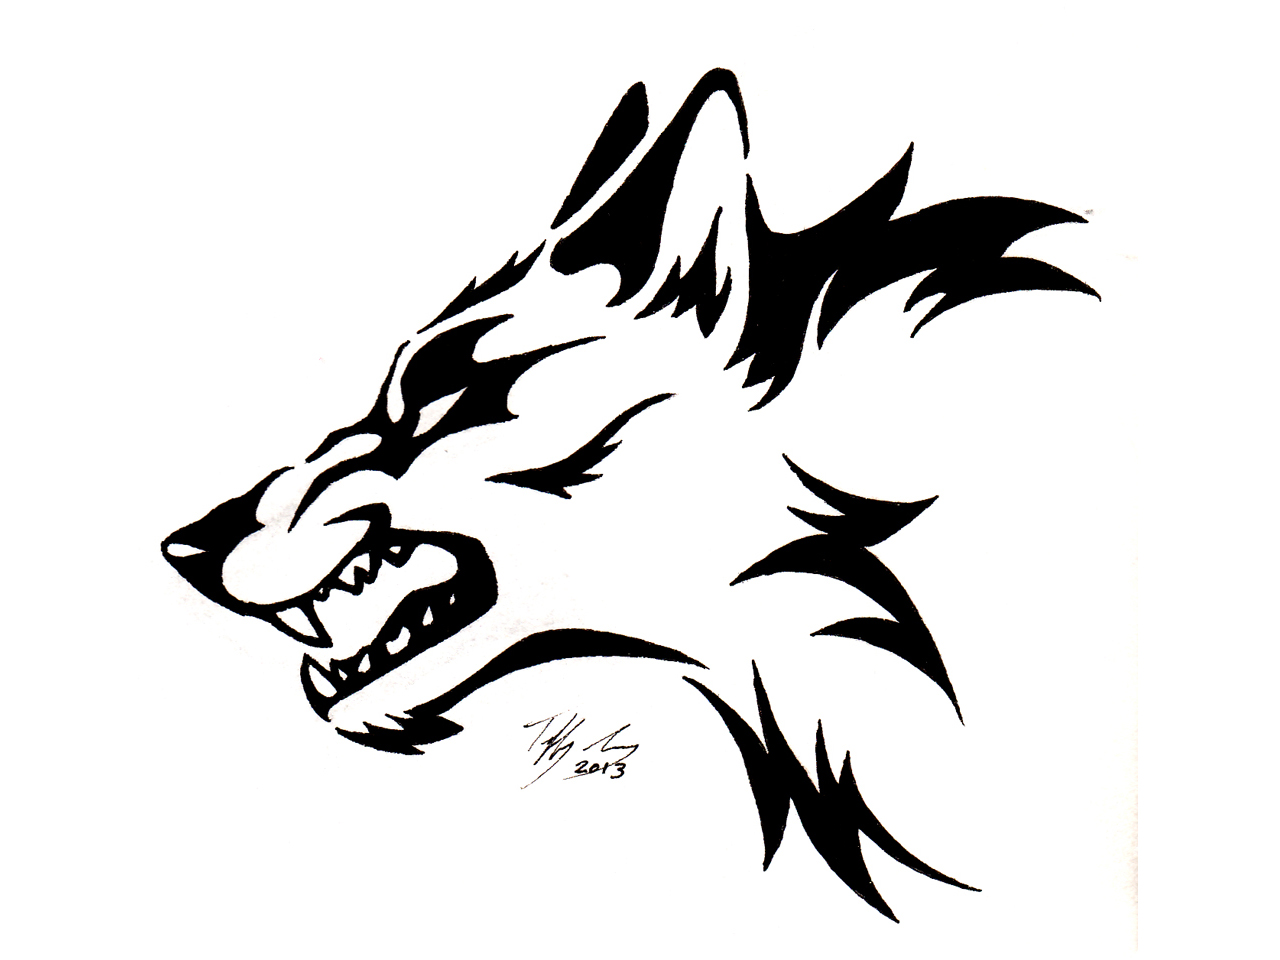 the gallery for tribal drawings of wolves. Black Bedroom Furniture Sets. Home Design Ideas